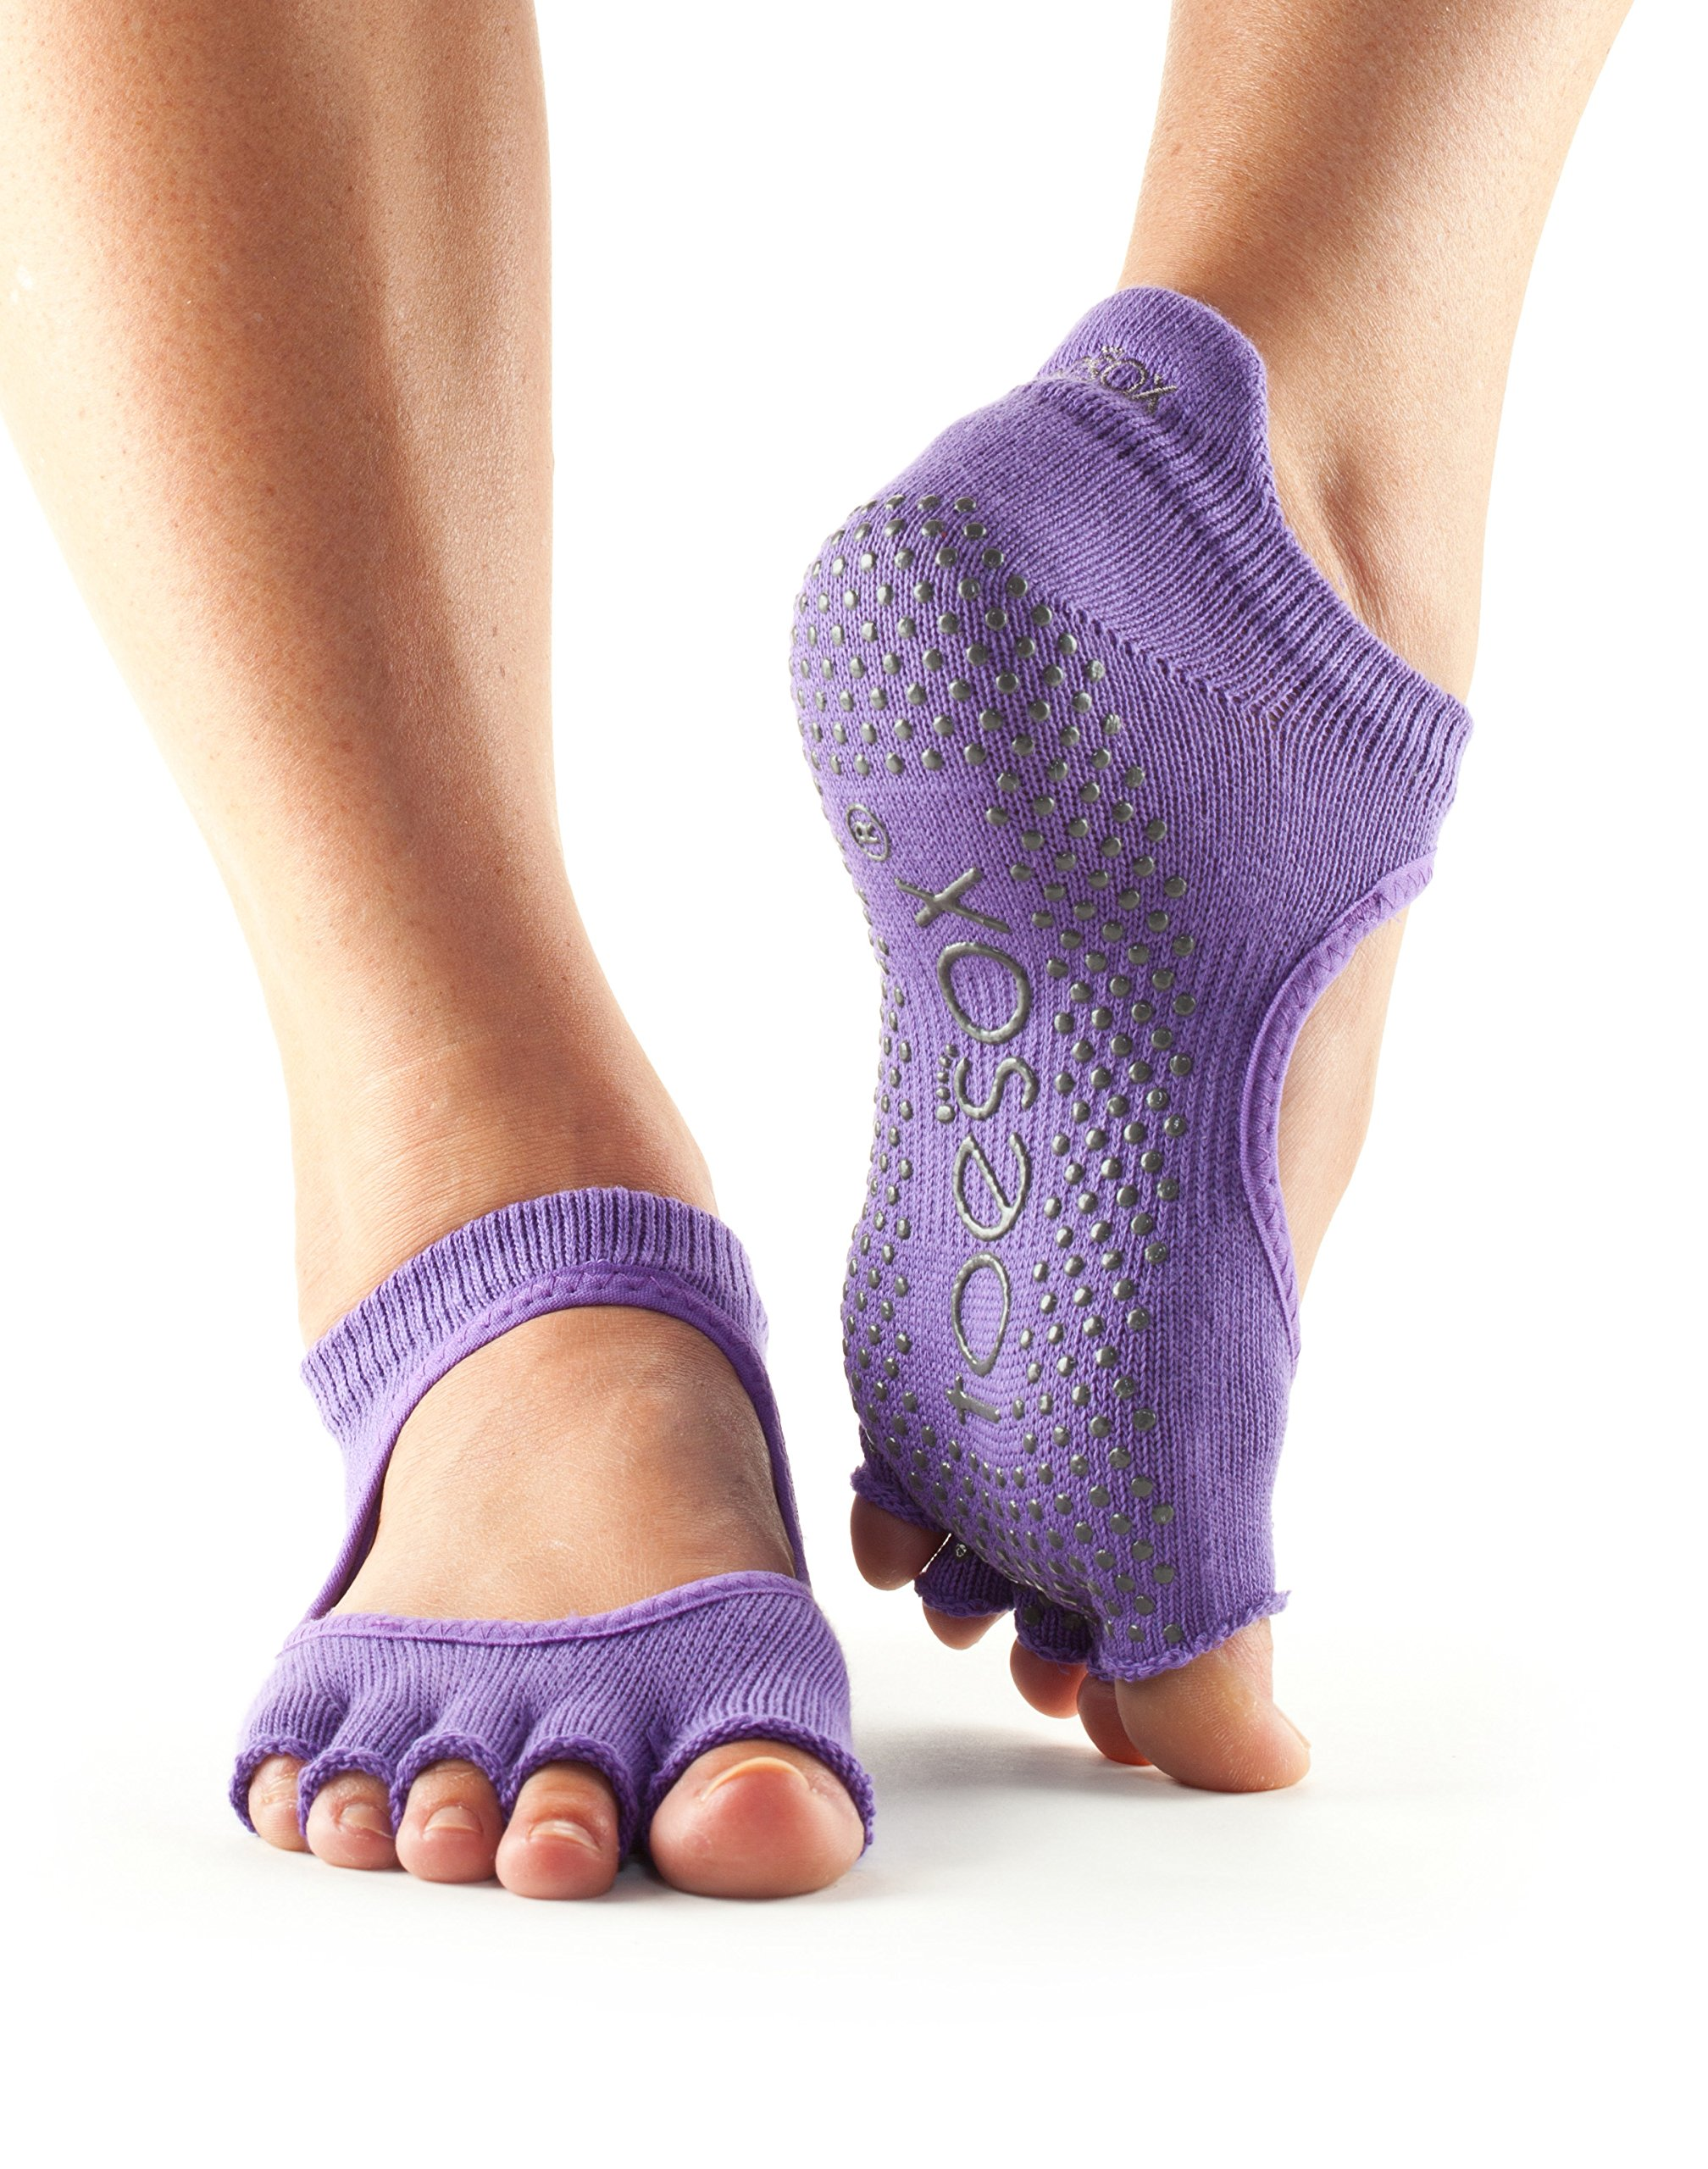 toesox Women's Bellarina Half Toe Grip Non-Slip for Ballet, Yoga, Pilates, Barre Toe Socks (Light Purple) Medium